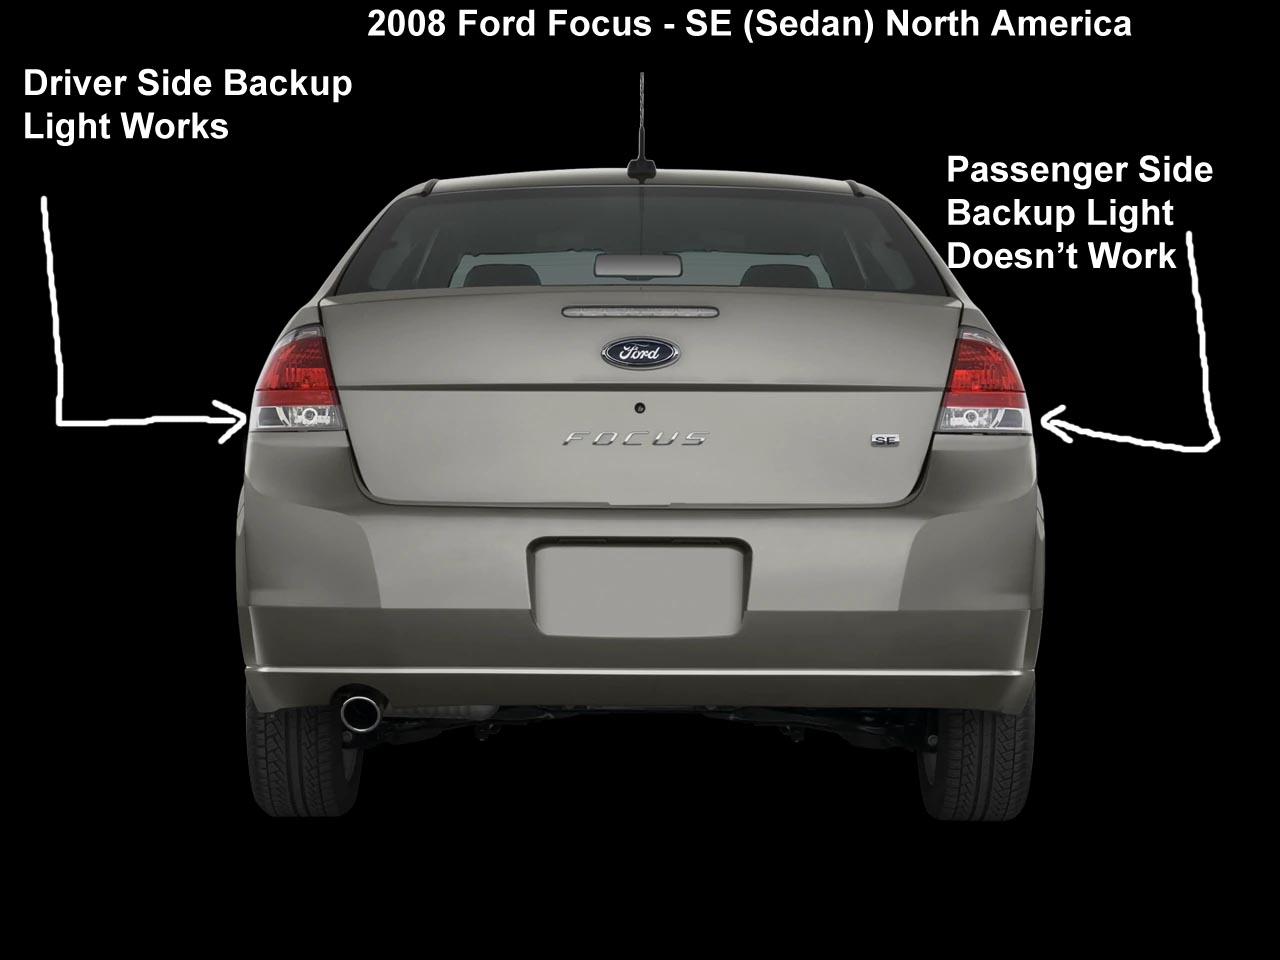 2008 Focus - Only 1 Backup Light Working  (Help Needed )-backup-lights.jpg